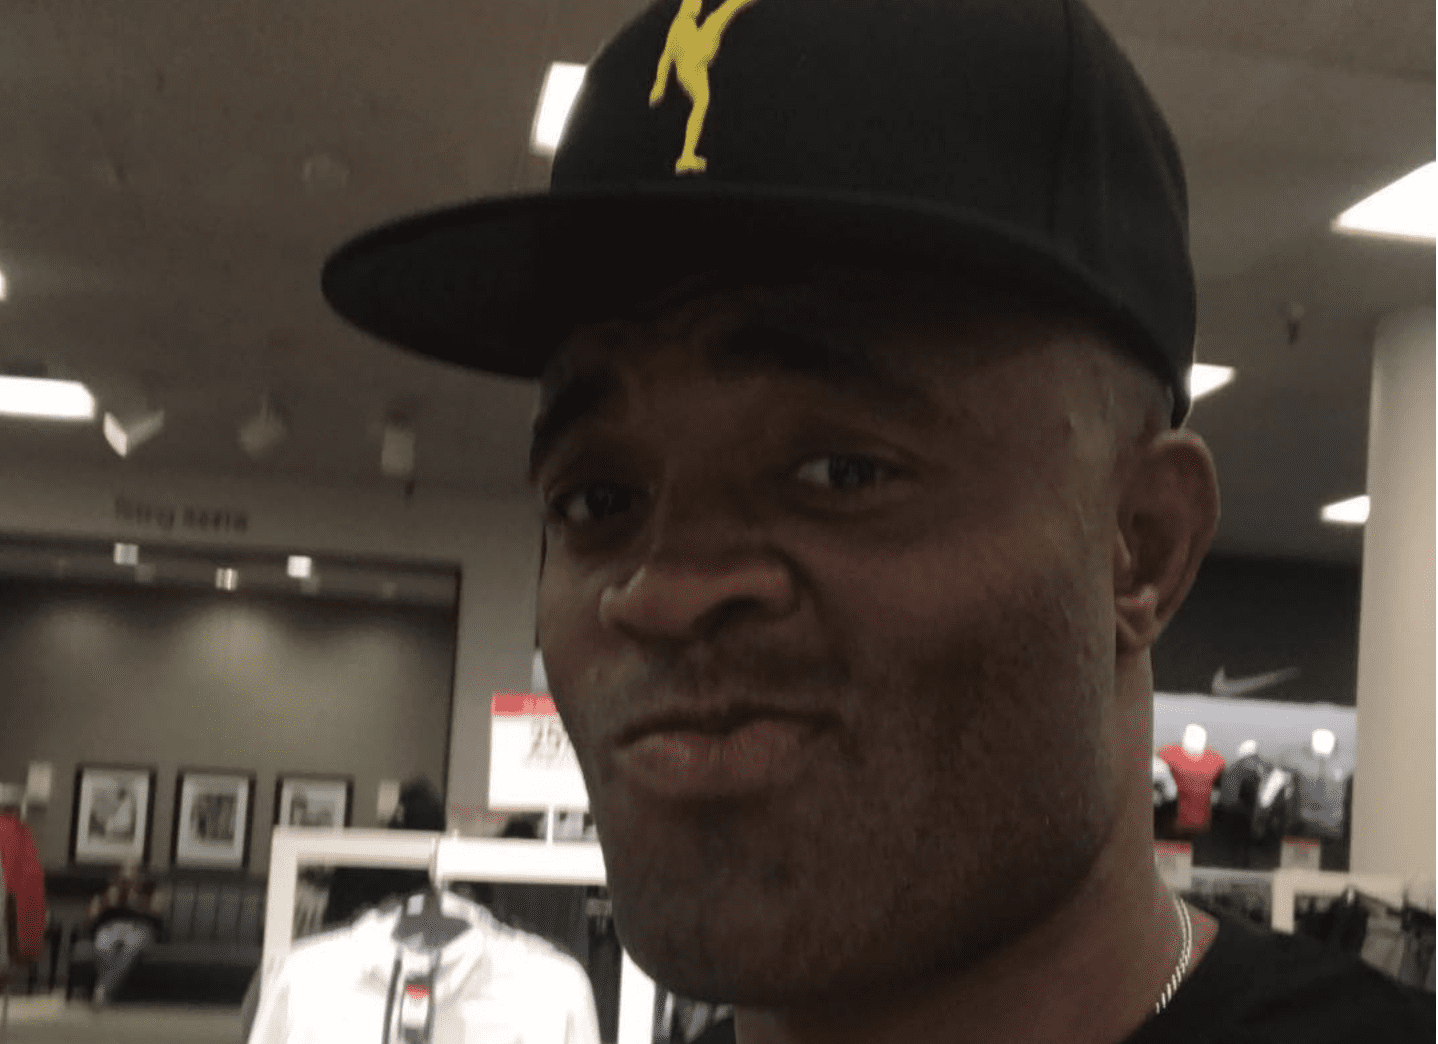 Anderson Silva in trouble again after positive doping test